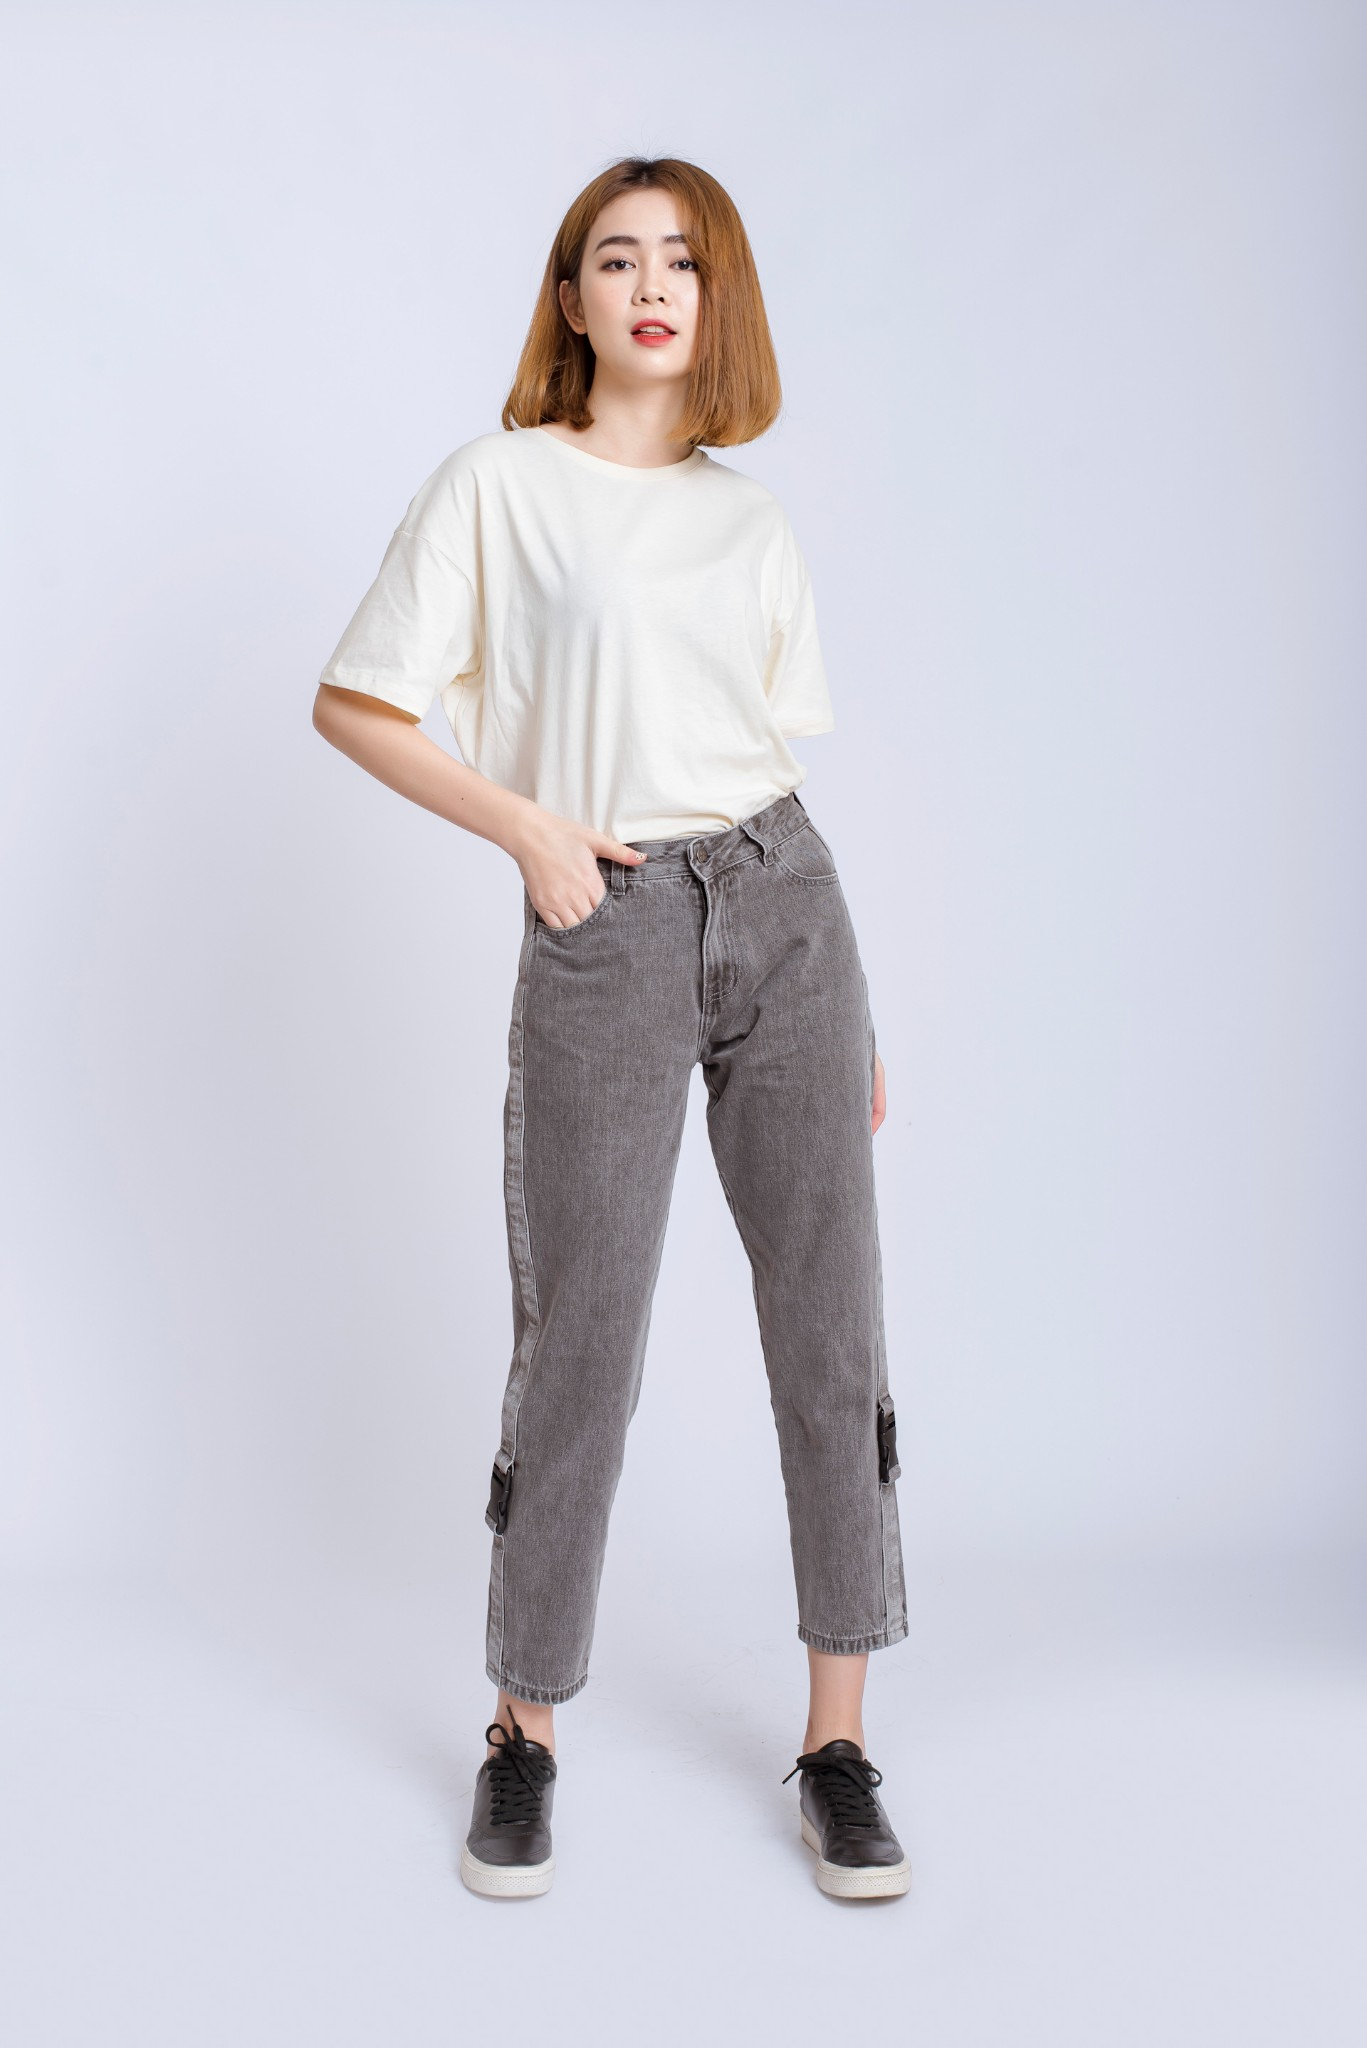 QUẦN JEANS NỮ MOM JEANS  CHỐT SẬP